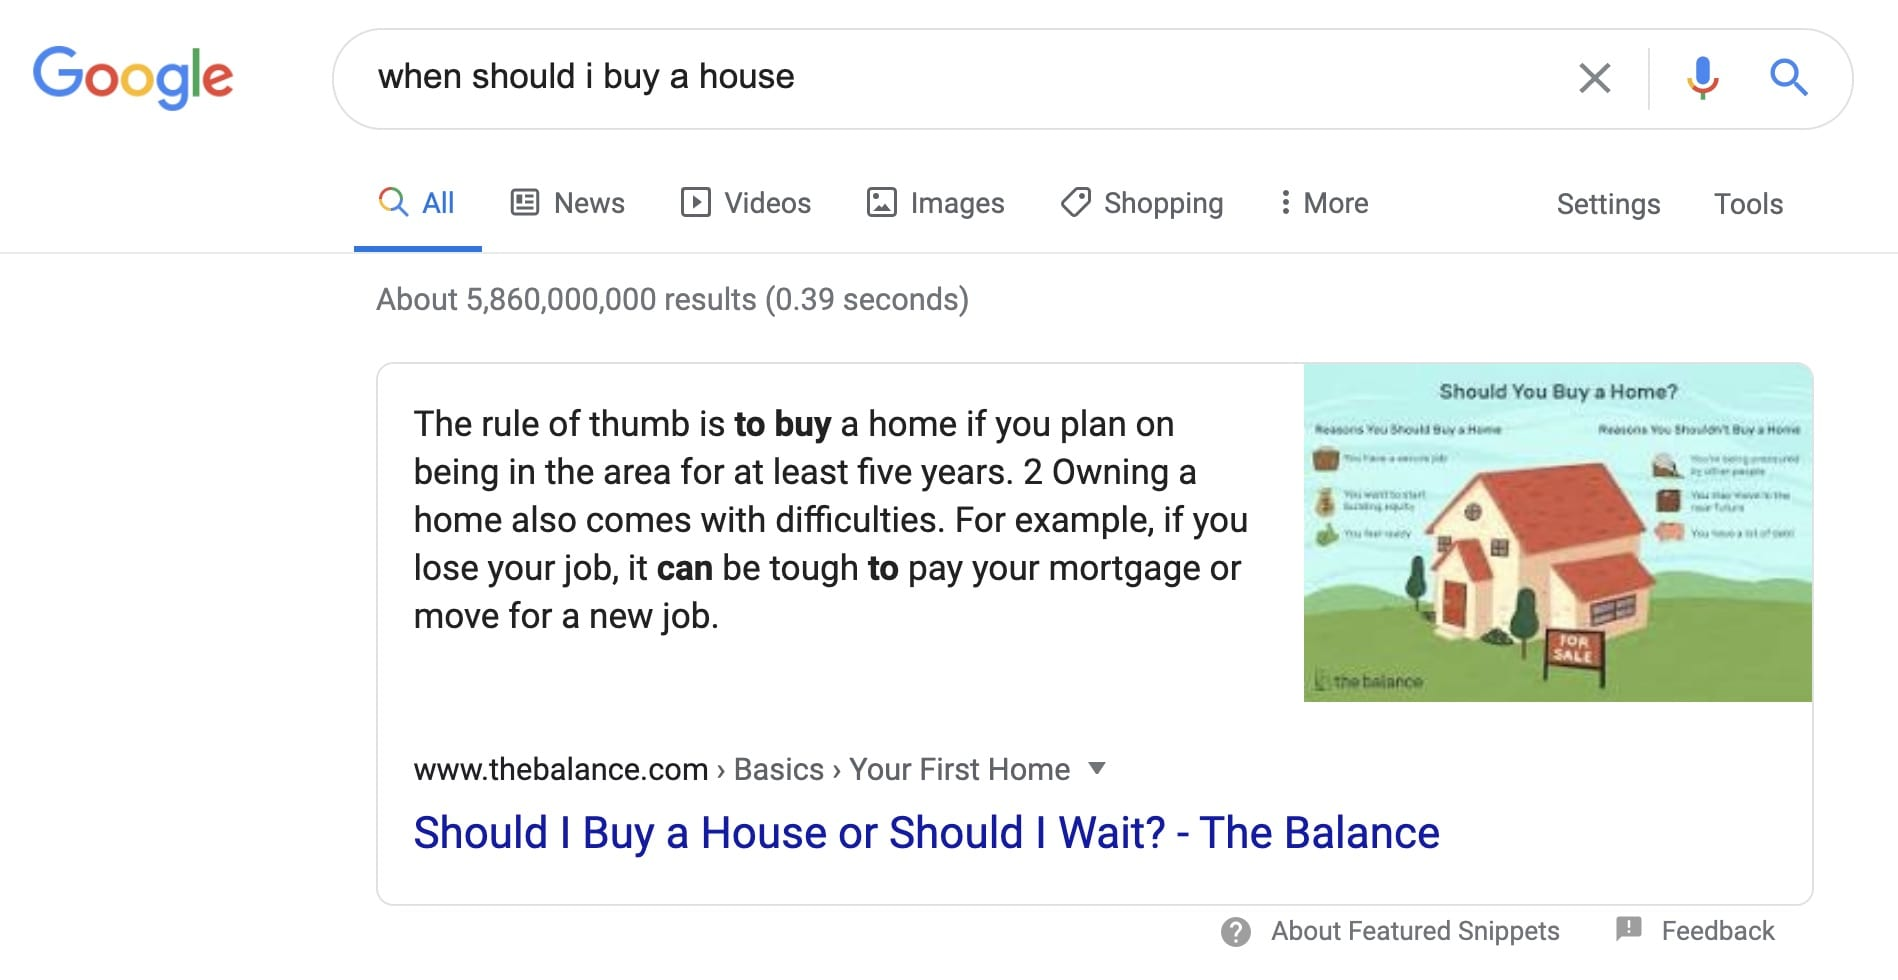 When Should I Buy a House is a query performed on Google that returns a featured snippet with an image